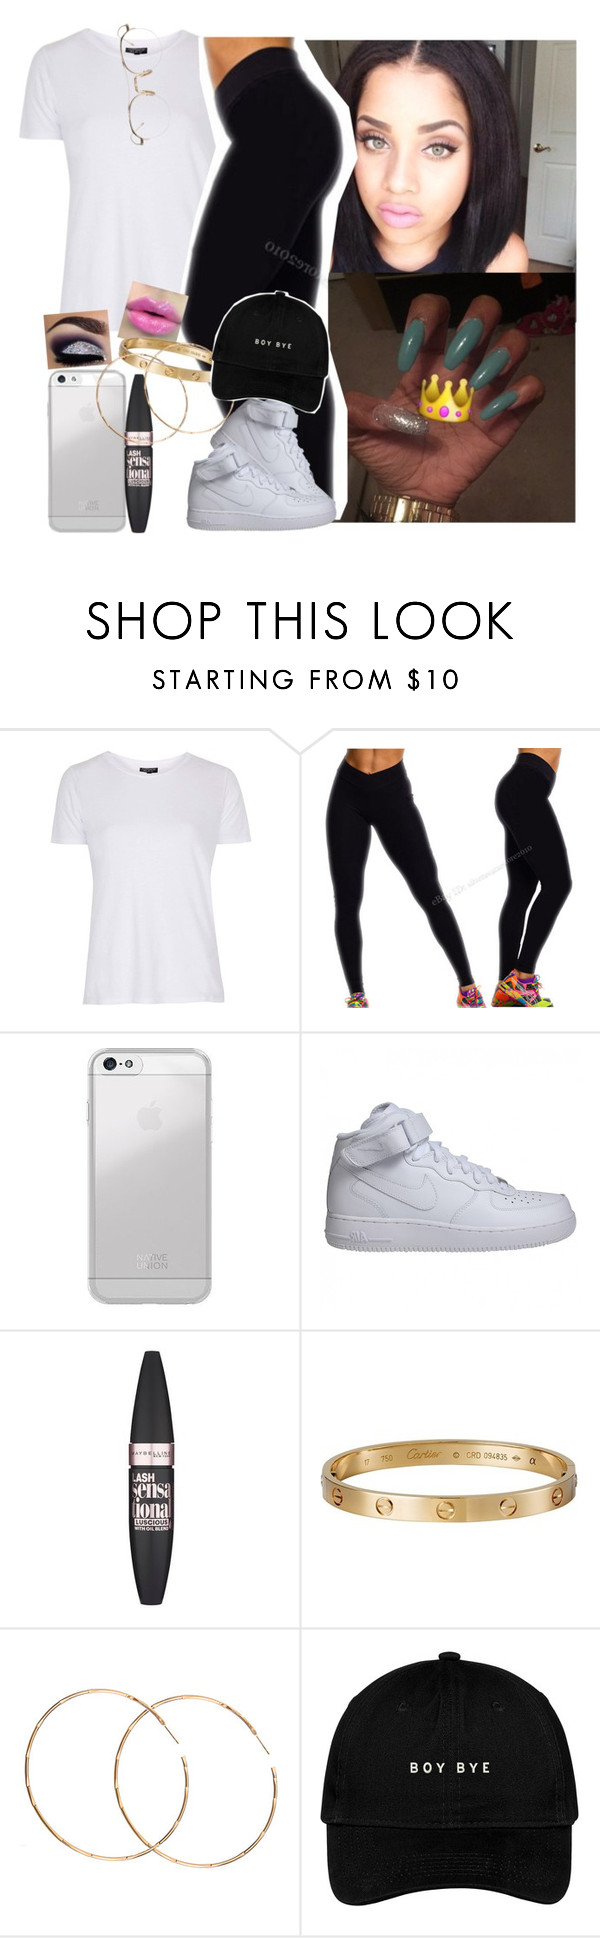 """Just cause is Friday ✔️‼️"" by saucinonyou999 ❤ liked on Polyvore featuring Topshop, Frontgate, NIKE, Maybelline, Cartier, Morra Designs and Thom Browne"